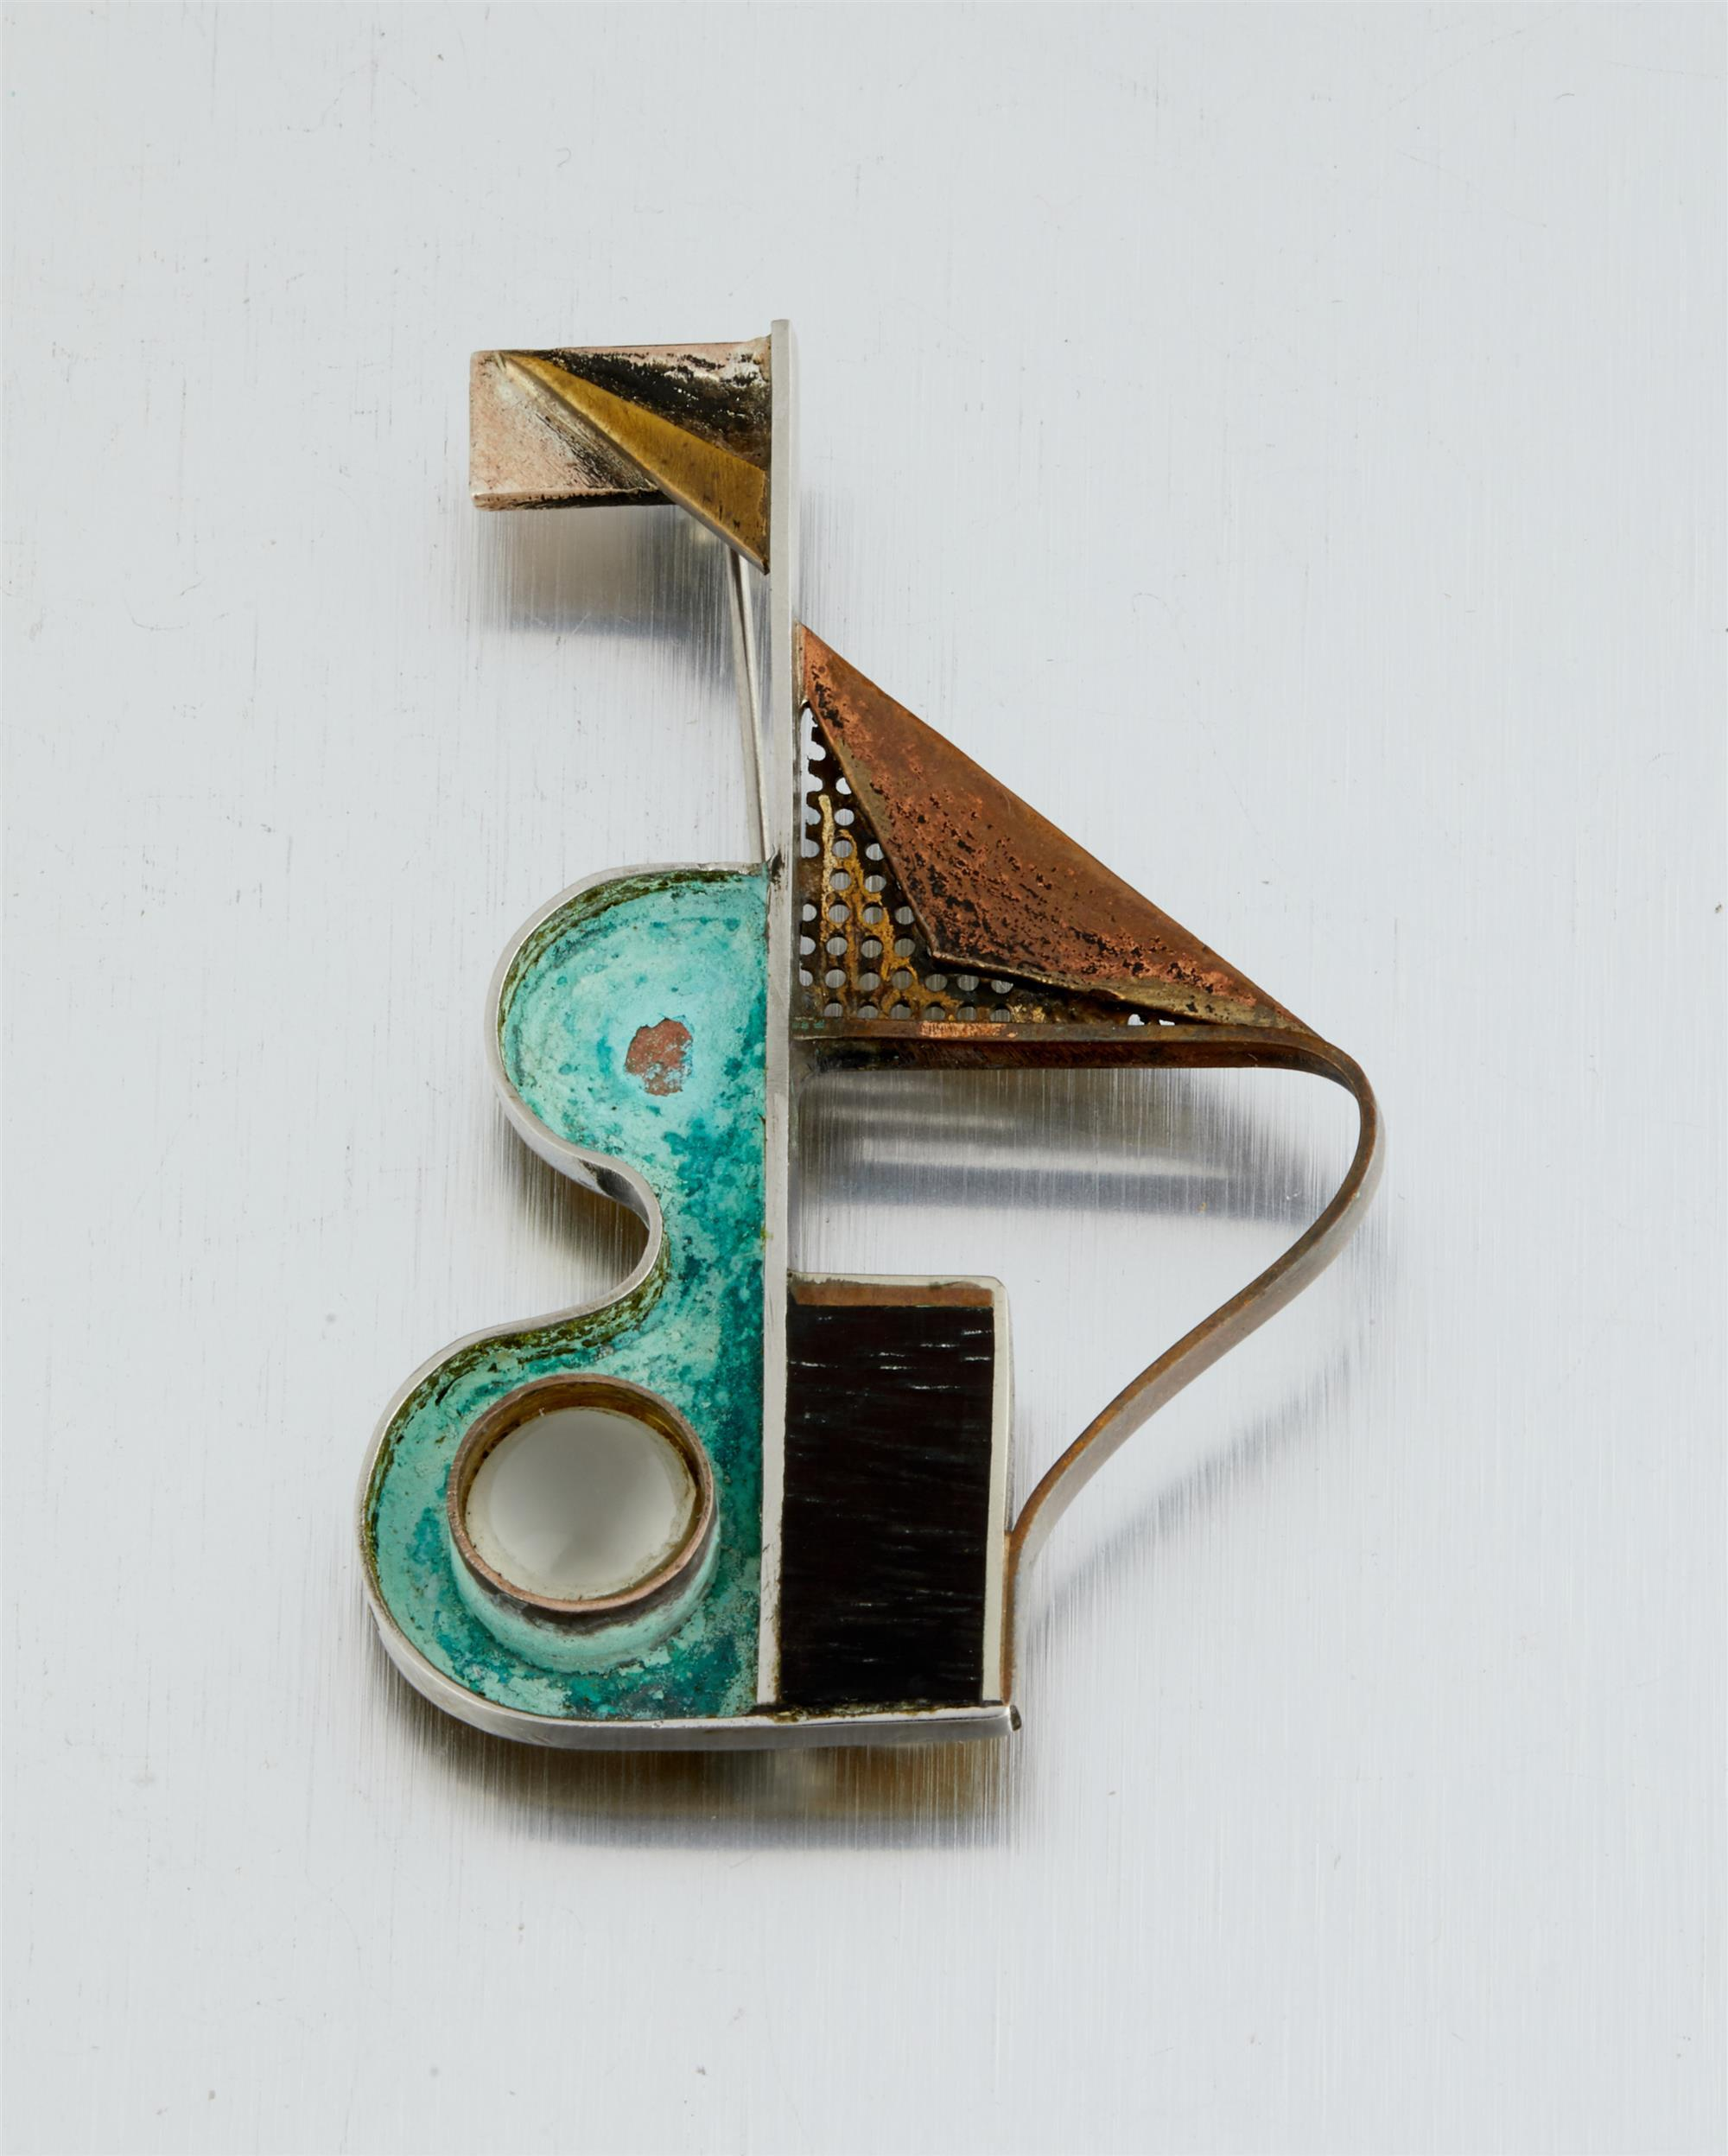 A Peter Macchiarini mixed-metal brooch